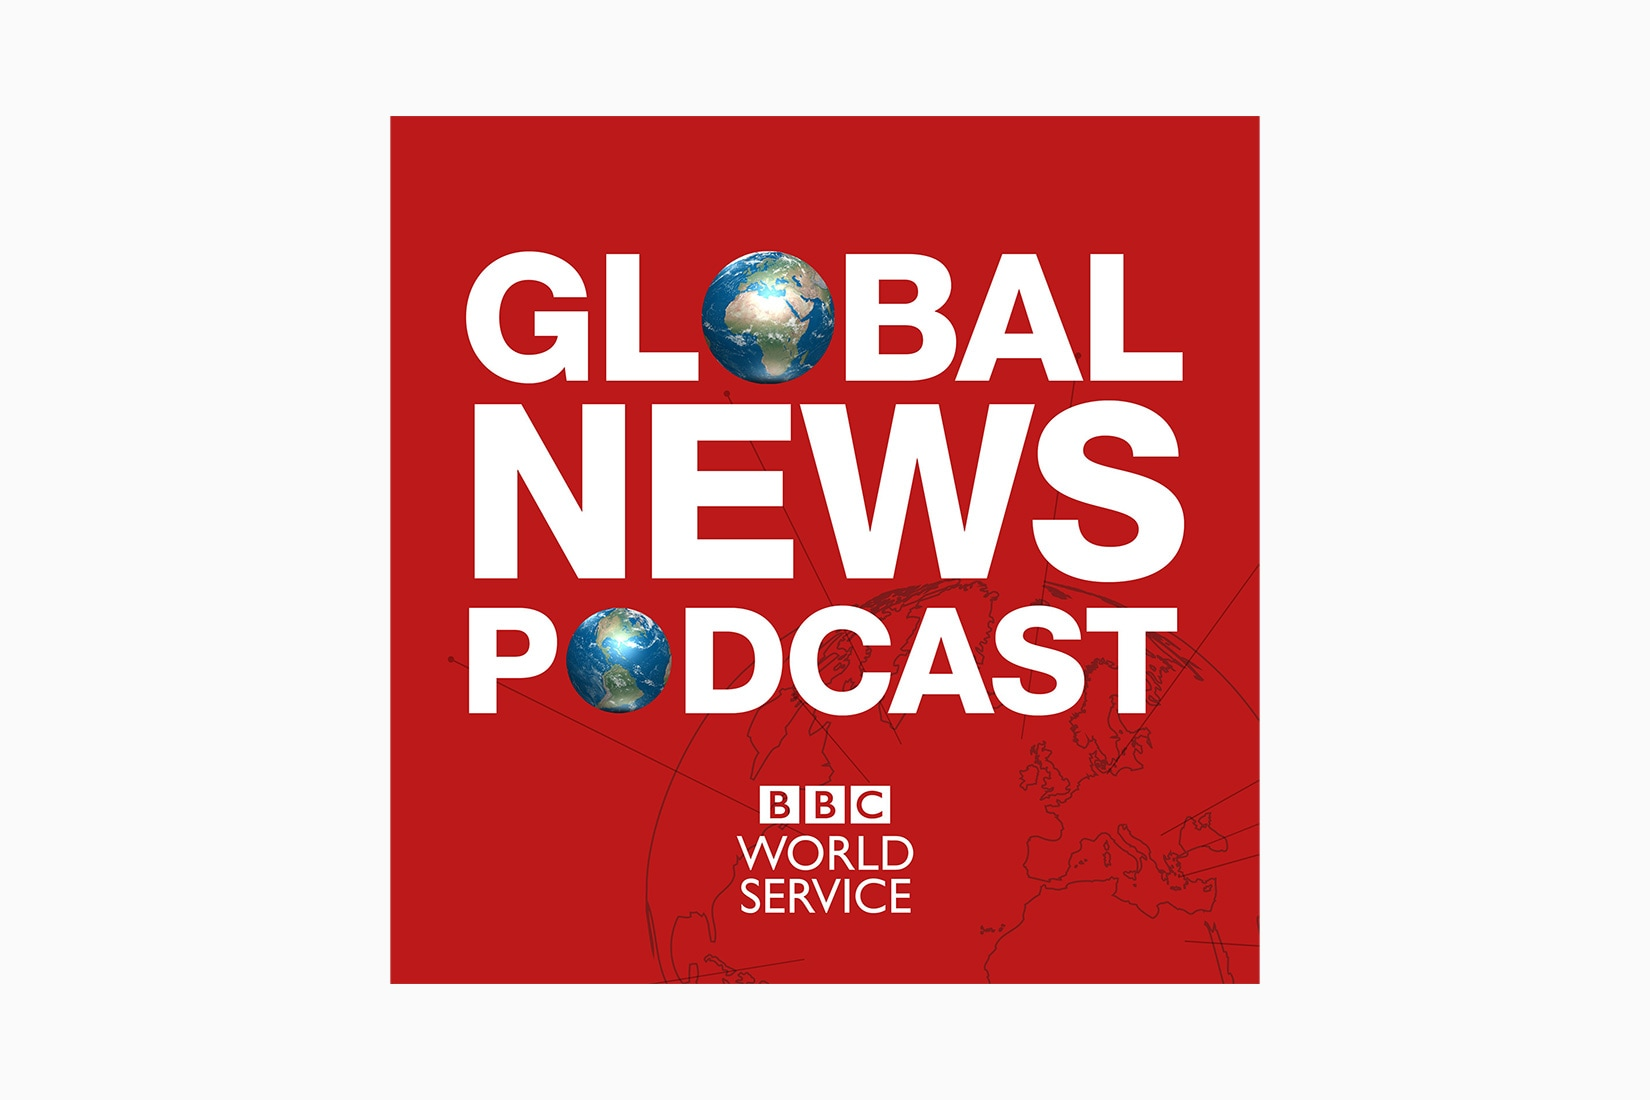 best podcasts global news BBC luxe digital